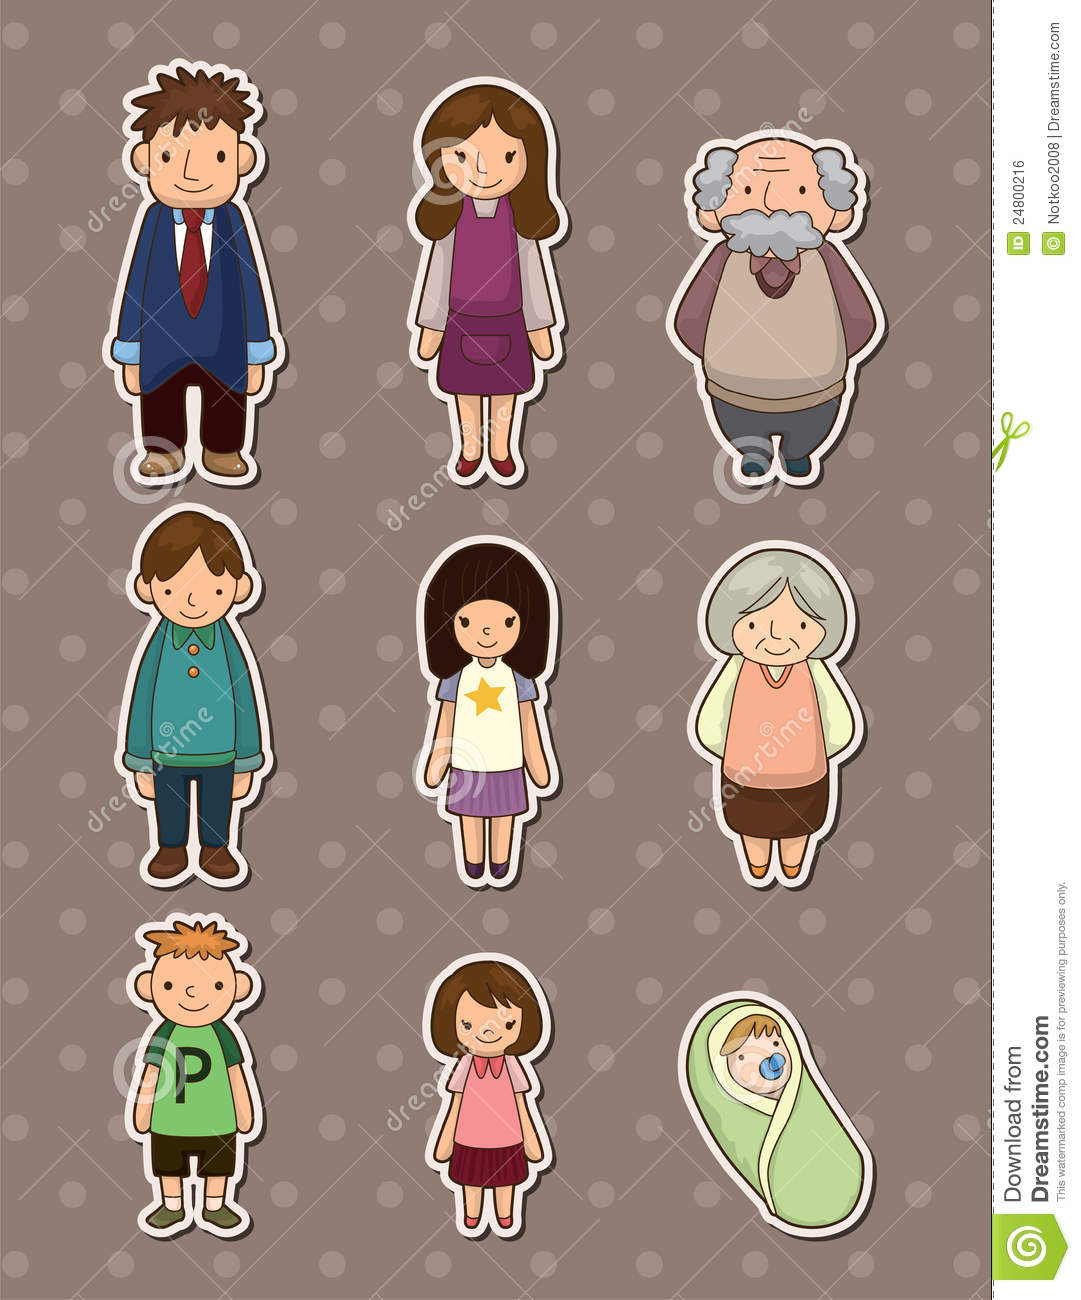 Family Stickers Royalty Free Stock Image - Image: 24800216